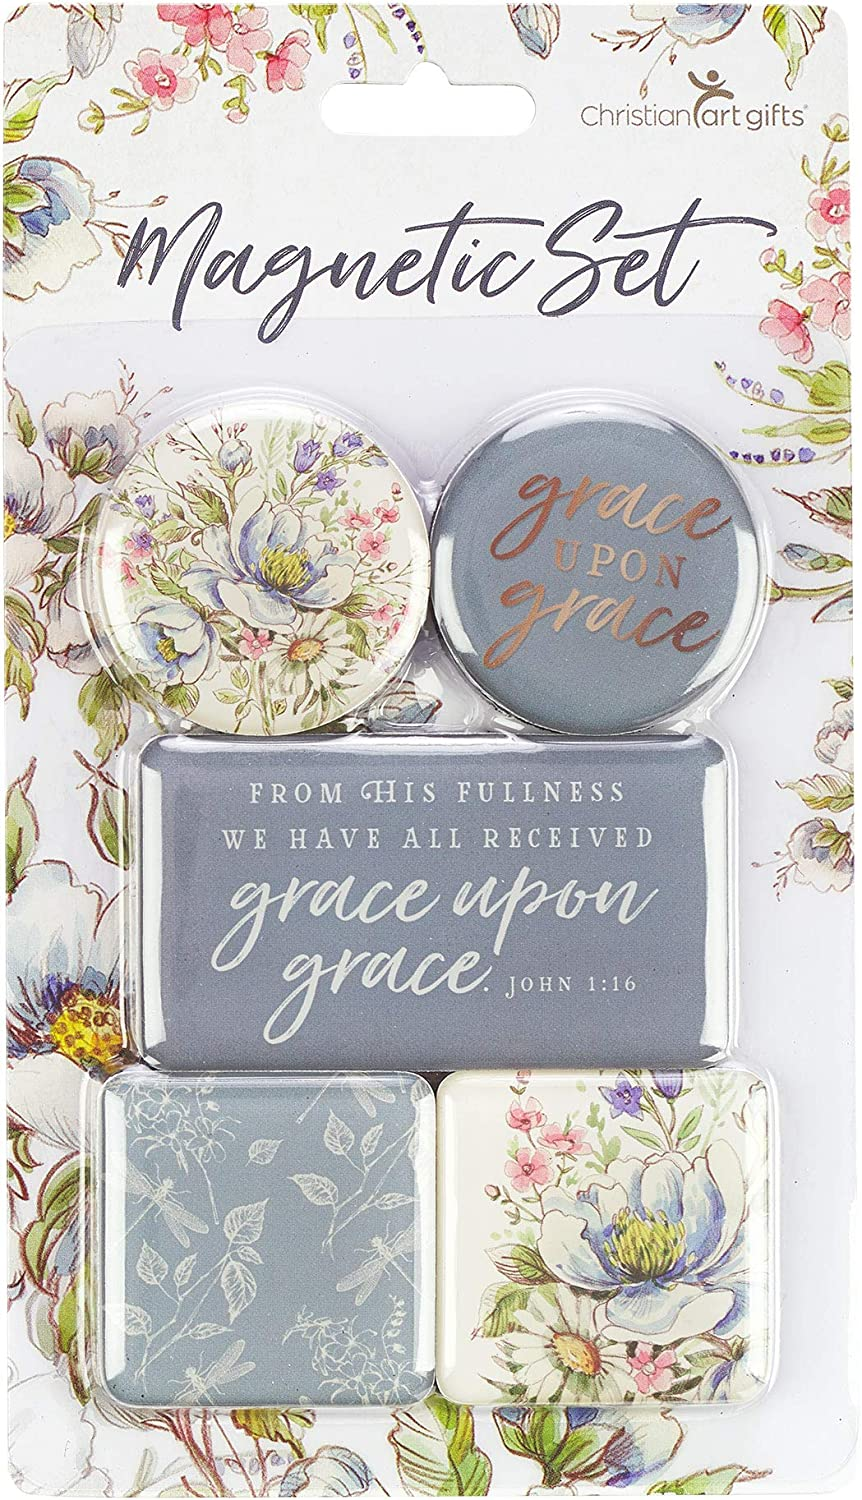 Christian Art Gifts Blue Flower Refrigerator Magnets | Grace Upon Grace - John 1:16 Bible Verse | Grace Upon Grace Collection Inspirational Fridge Magnet Mini Variety Set/5